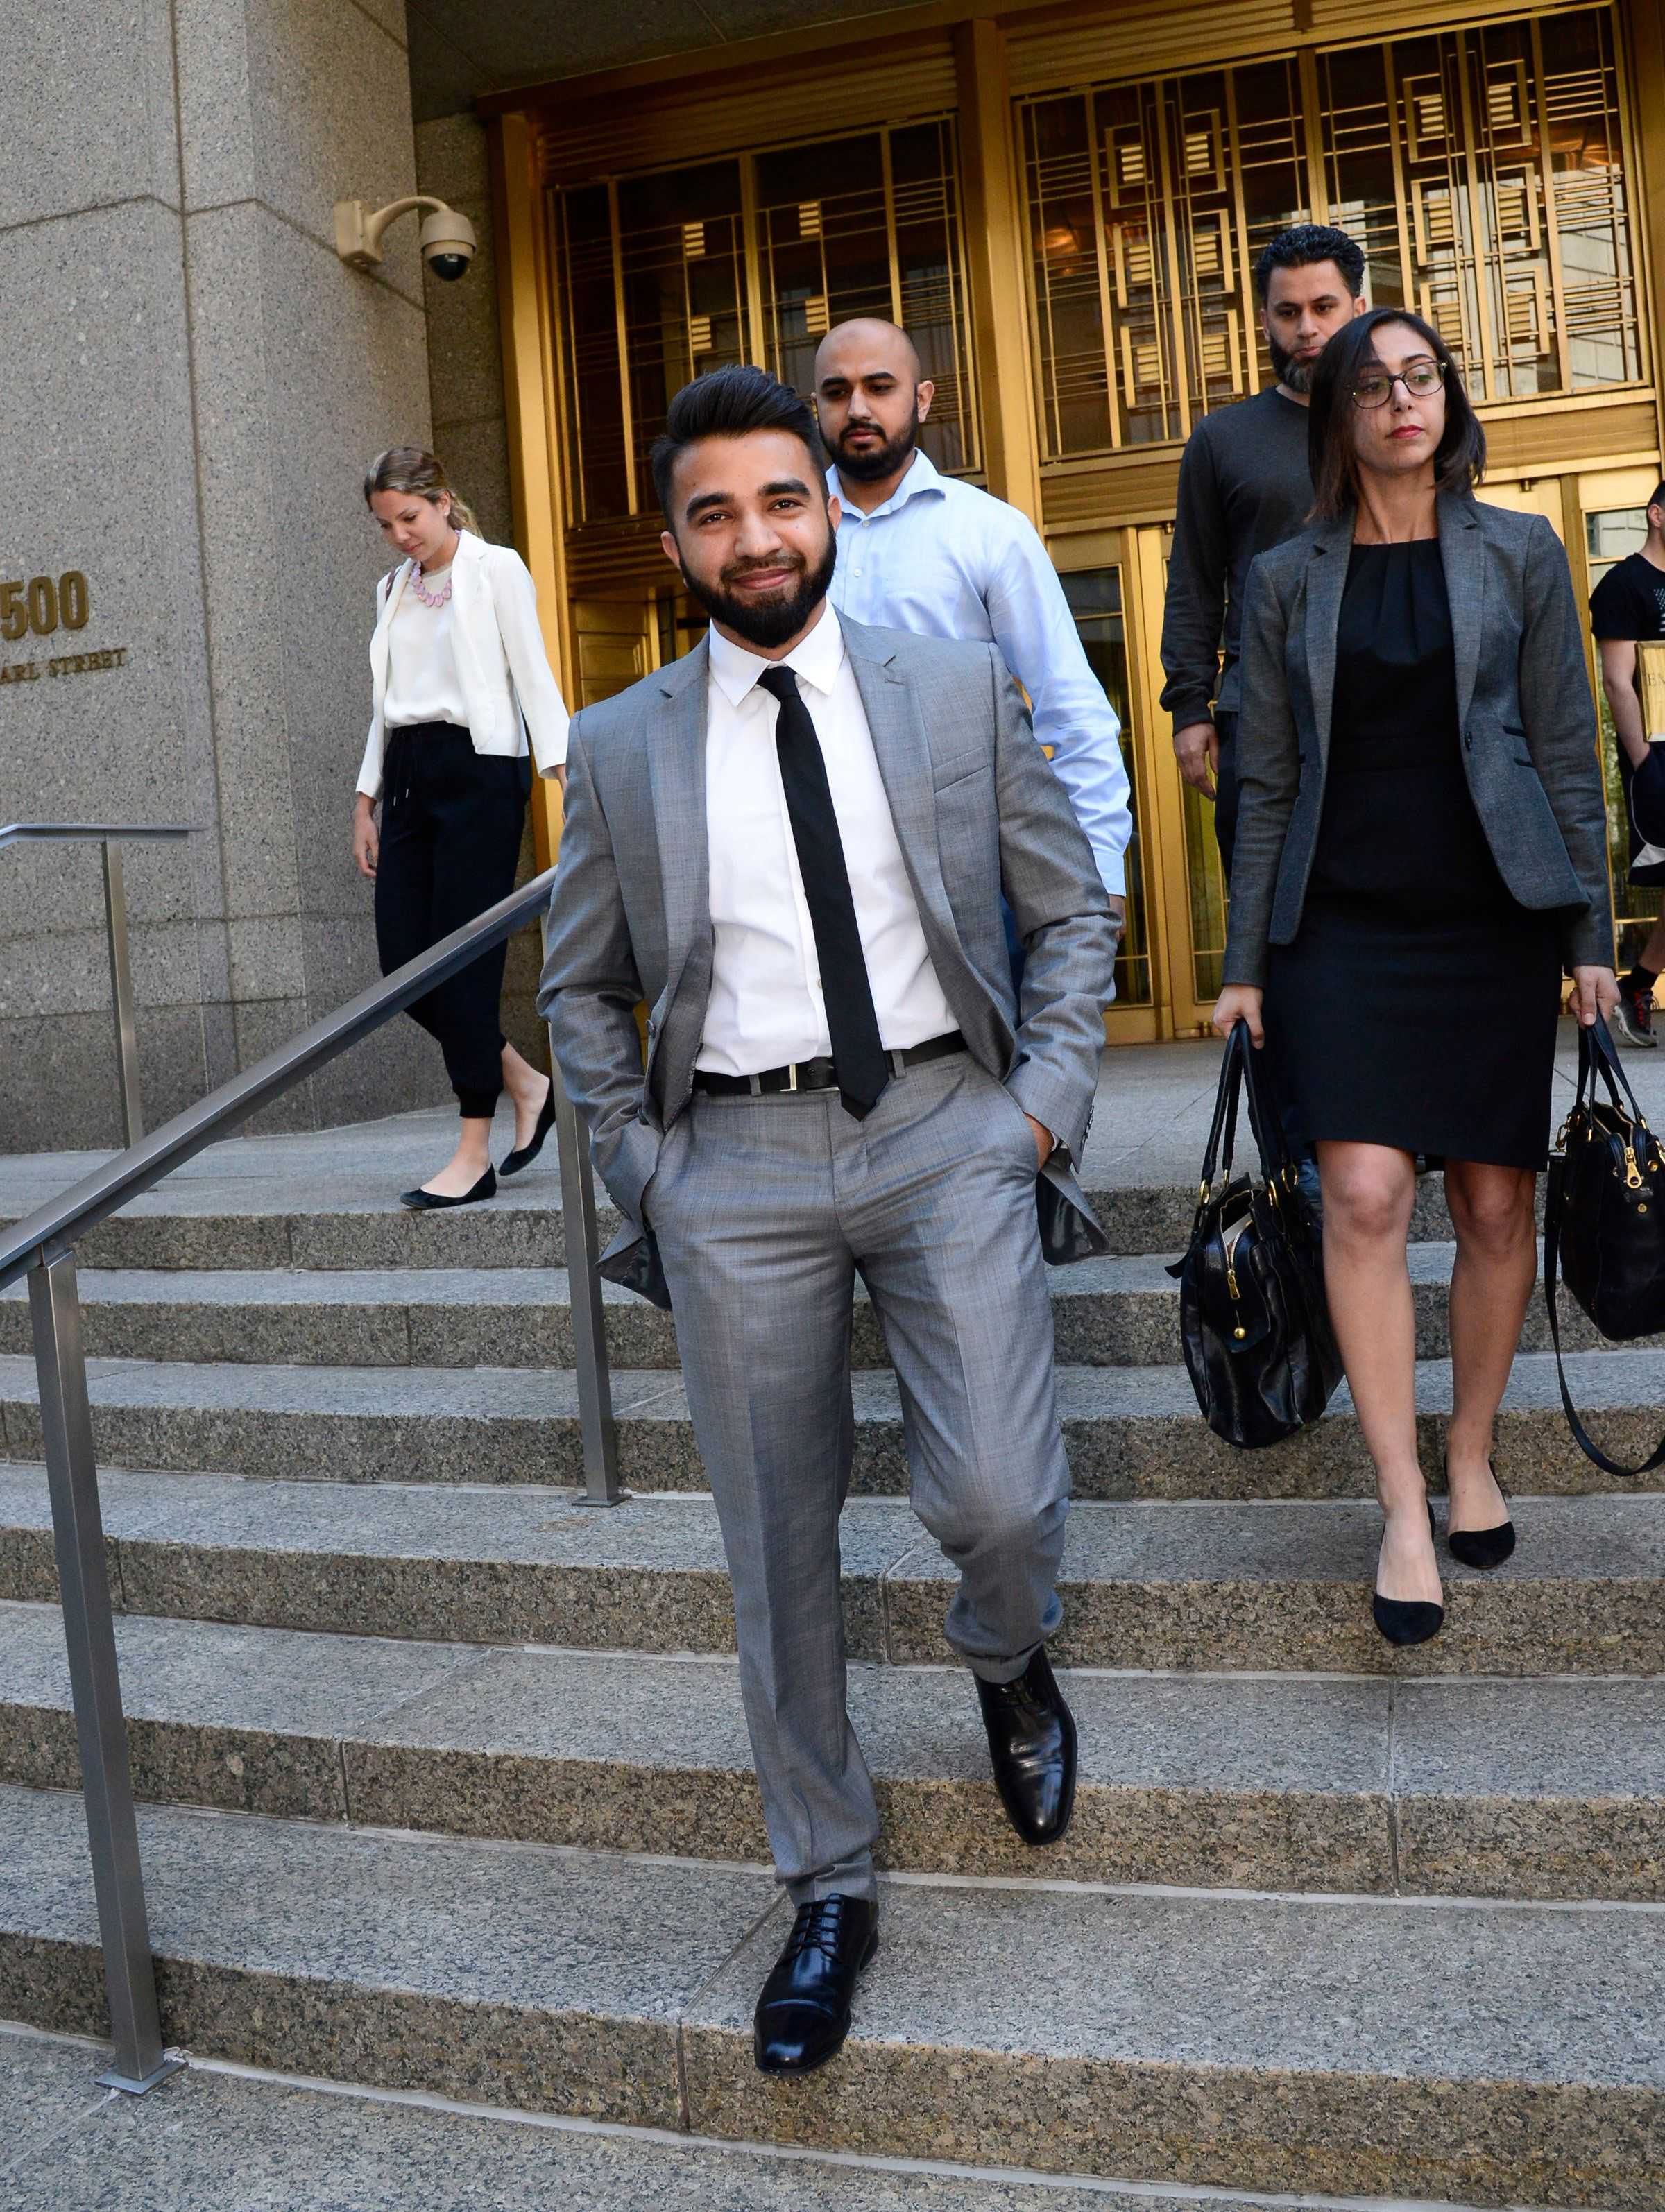 Police Officer Masood Syed (center in suit) leaves Manhattan Federal Court on Wednesday, June 22, 2016. Sayed, a Sunni Muslim, is suing the city for suspending him from the force over the length of his beard. (Photo by Jefferson Siegel/NY Daily News via Getty Images)